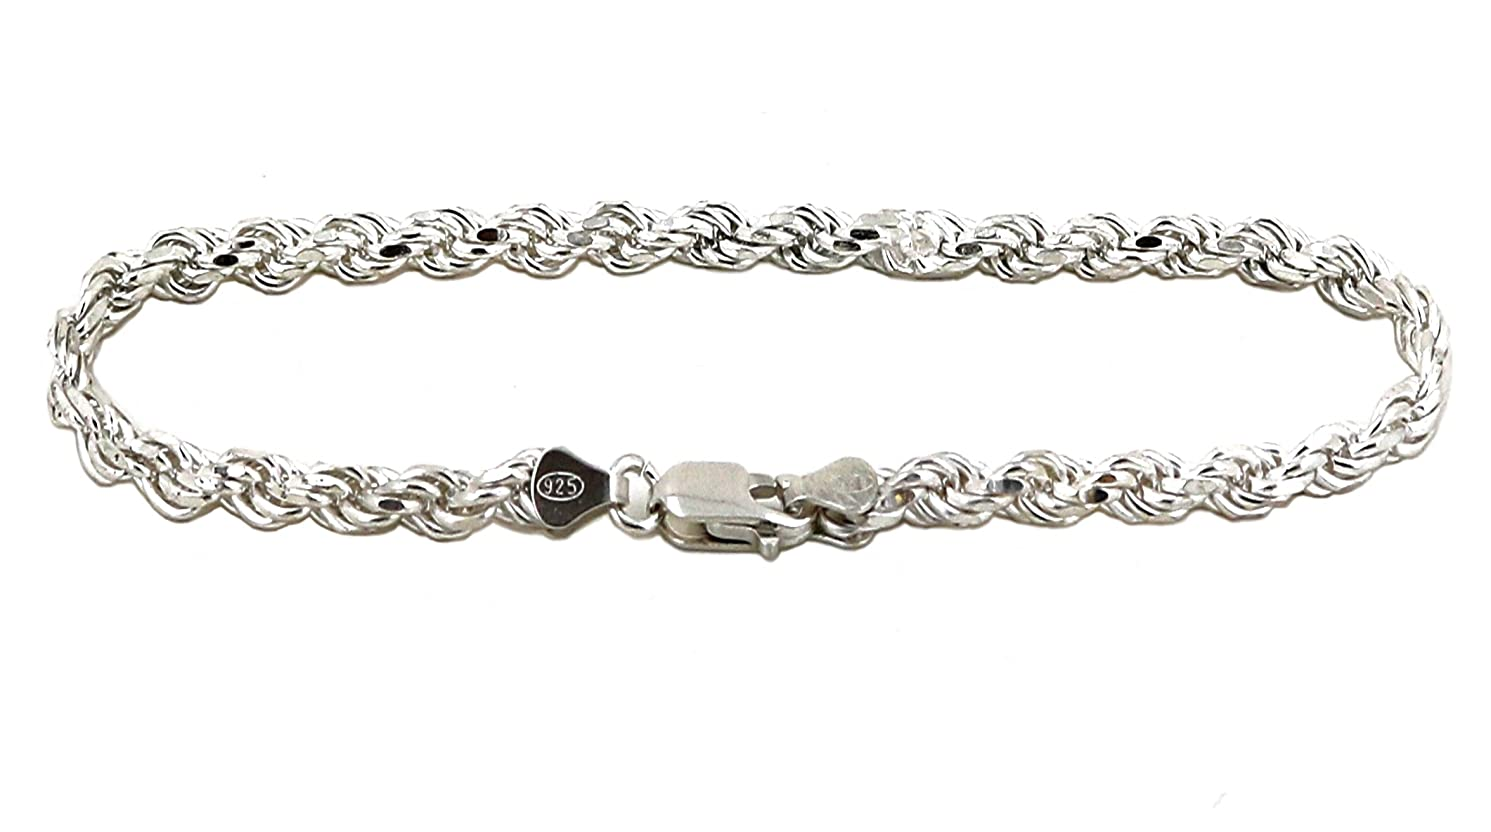 GDIOnline Solid 925 Sterling Silver Diamond Cut Rope Bracelet/Anklet for Men and Women 2.0mm to 6.0mm, 7